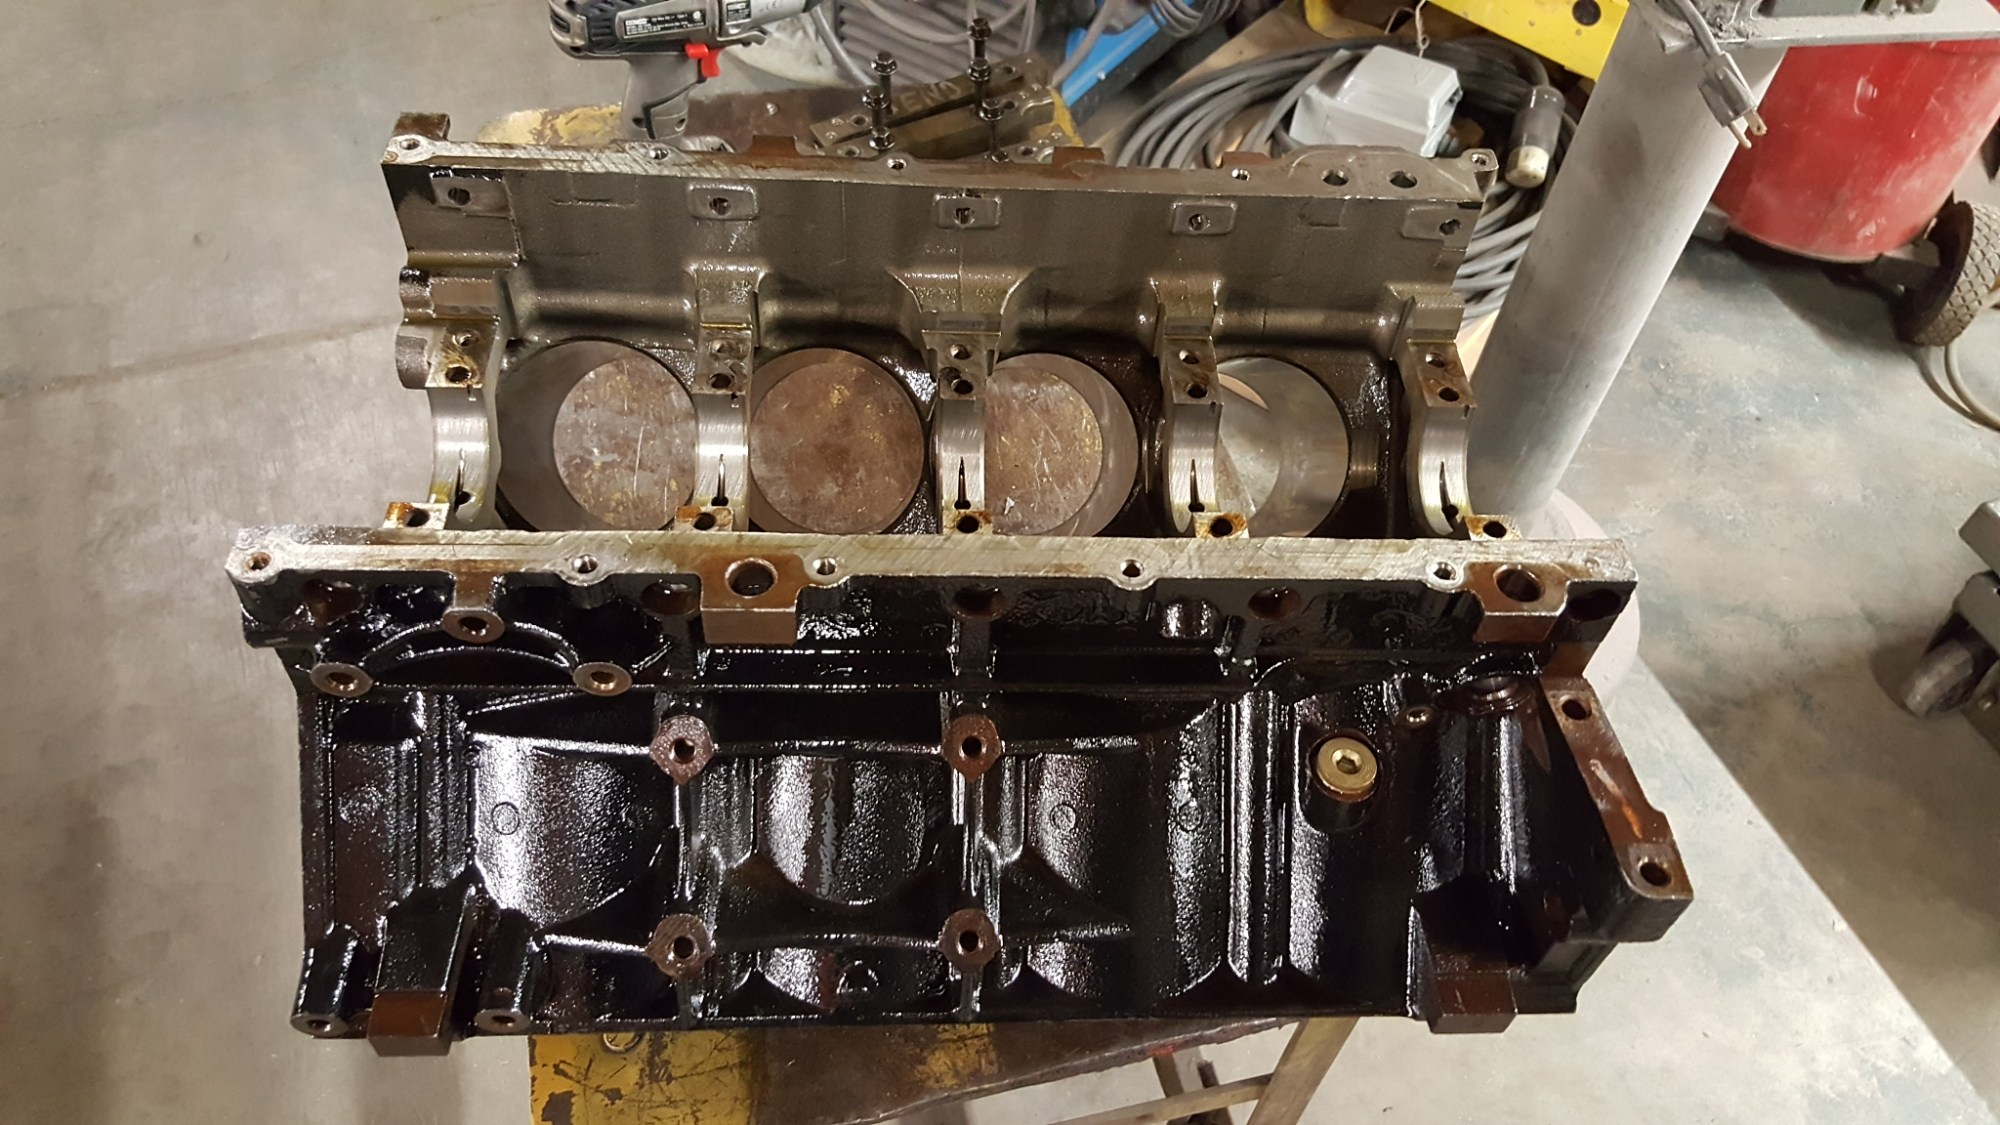 hight resolution of this is a chevy gm ls lq9 6 0 liter cast iron v8 engine cylinder block we did a bore hone to all 8 cylinders and finished them for a new set